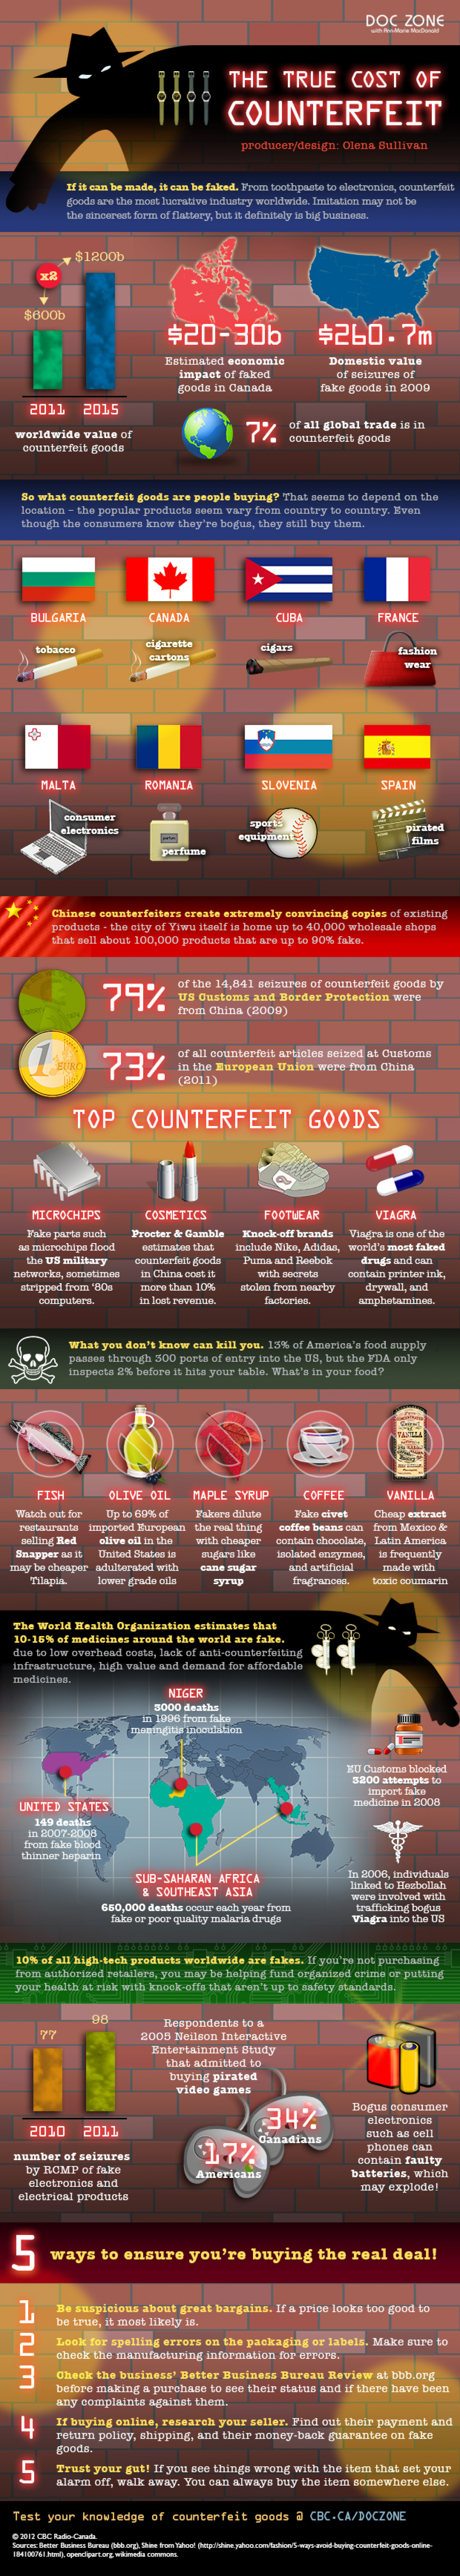 The True Cost of Counterfeit Infographic